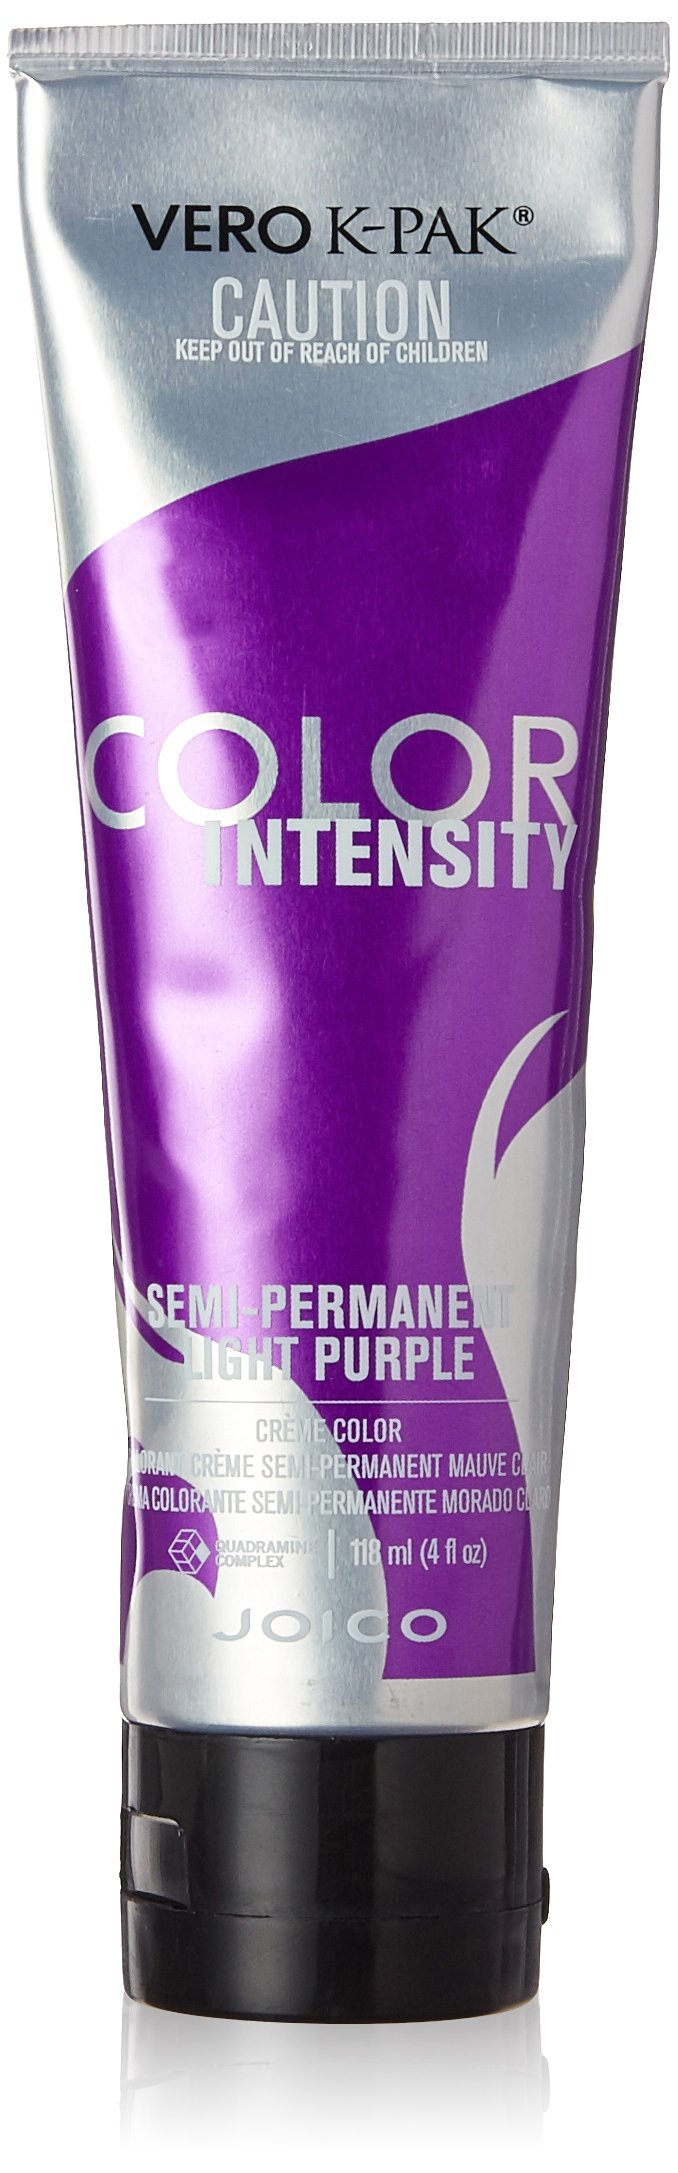 Amazon Joico Intensity Semi Permanent Hair Color Soft Pink 4